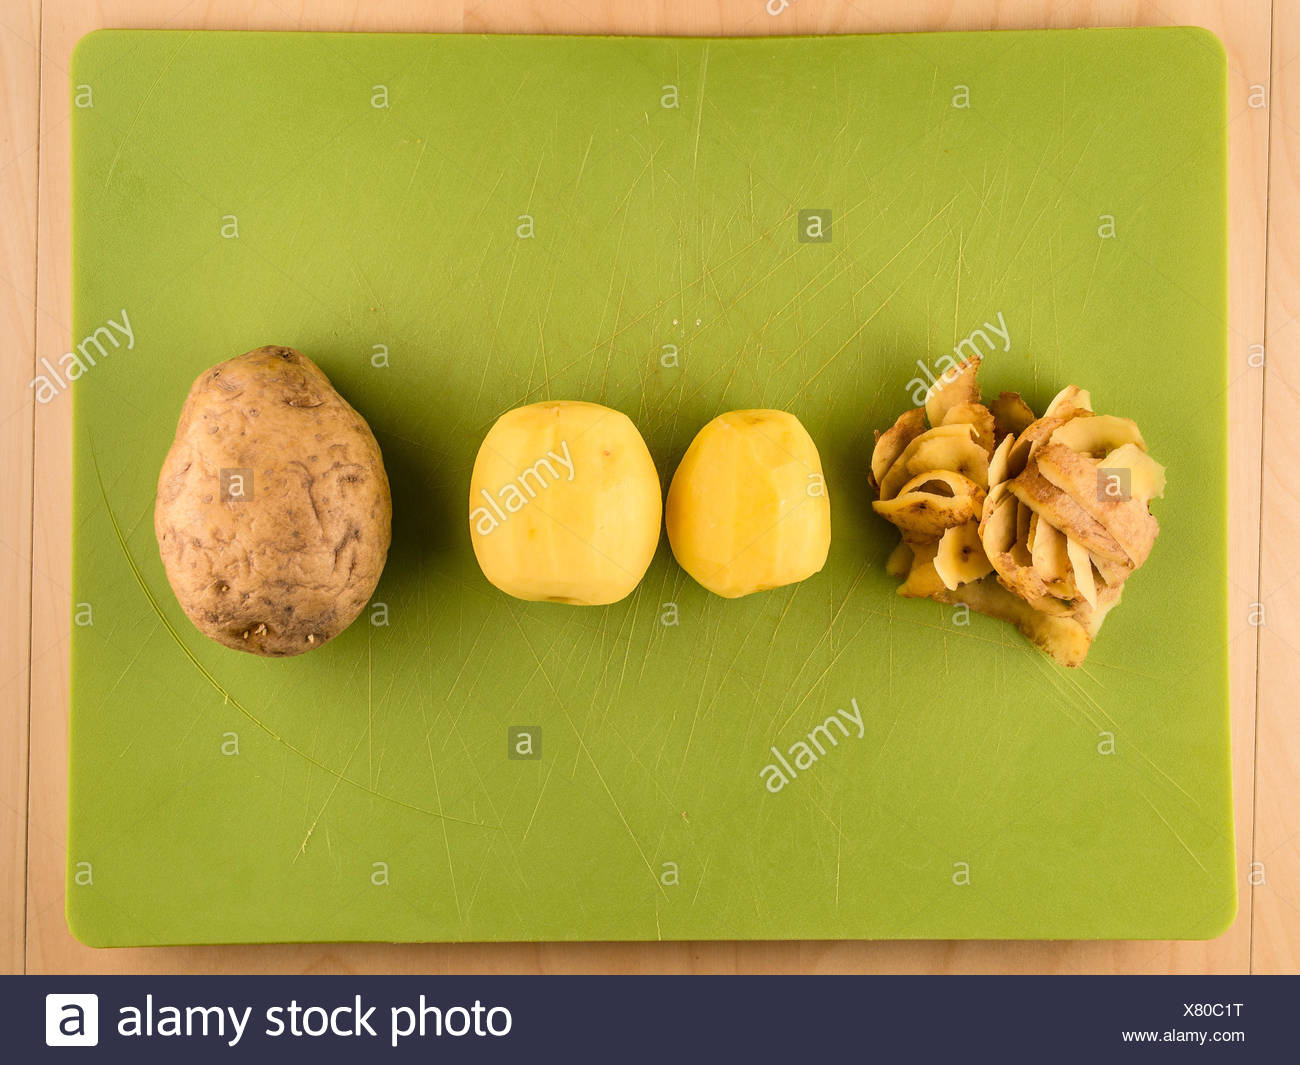 Potatoes, skins in center of green plastic board Stock Photo